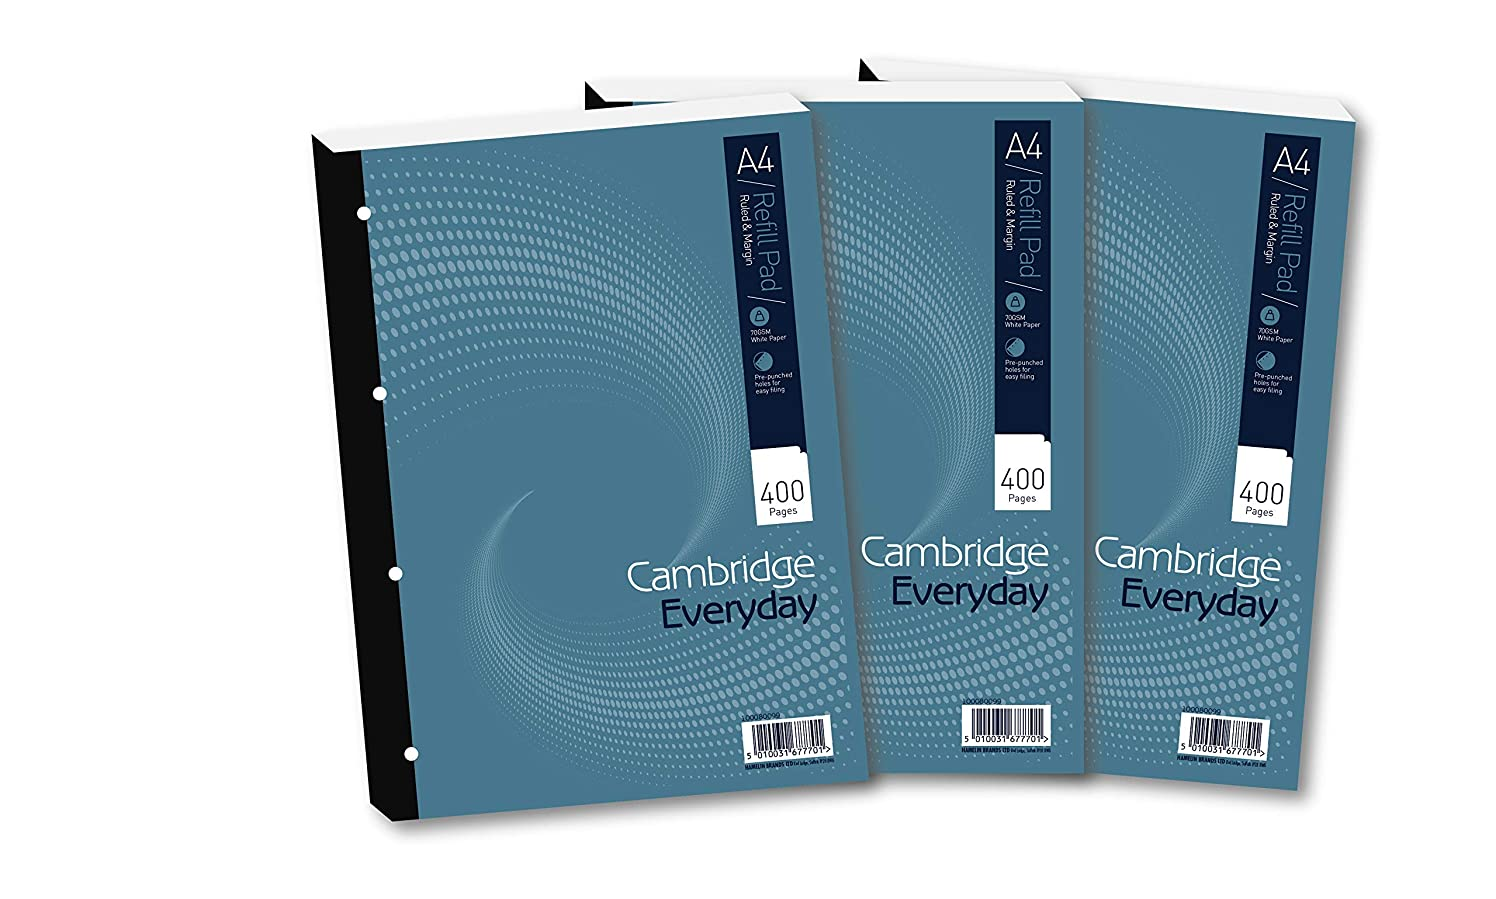 Cambridge A4 Refill Pad, Ruled and Margin, 400 Page, Pack of 3